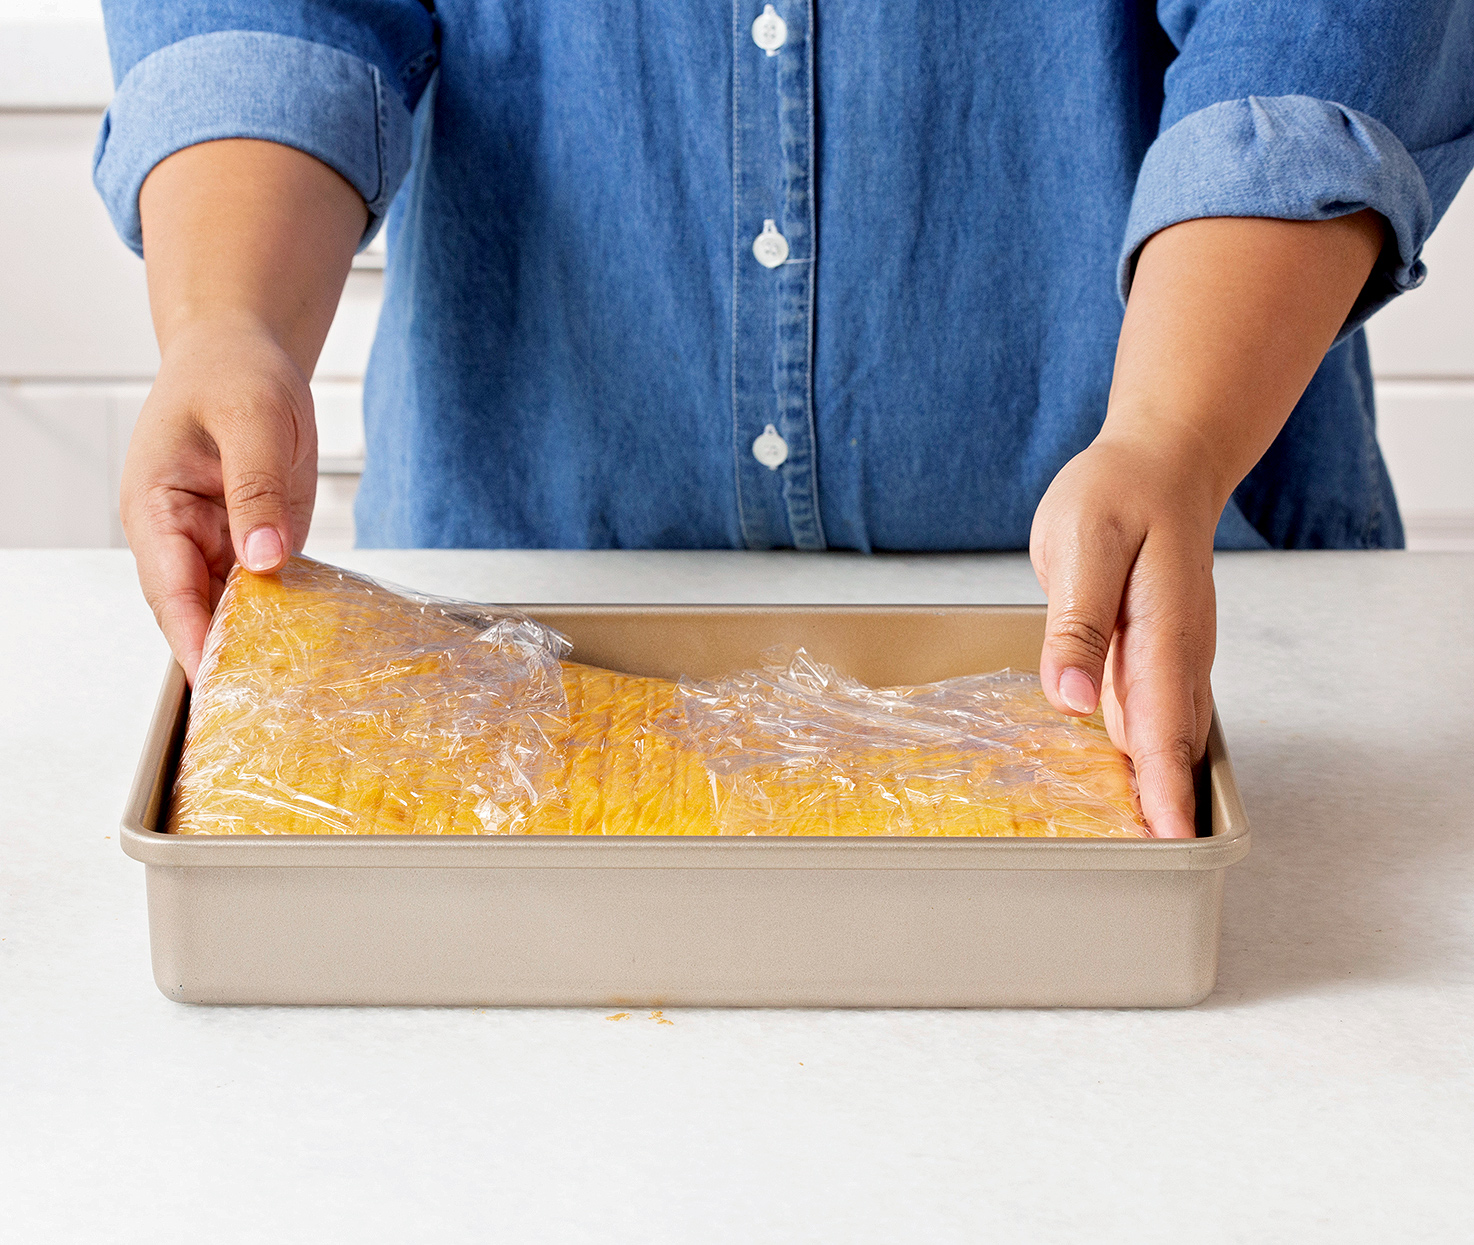 placing plastic-wrapped cake in pan